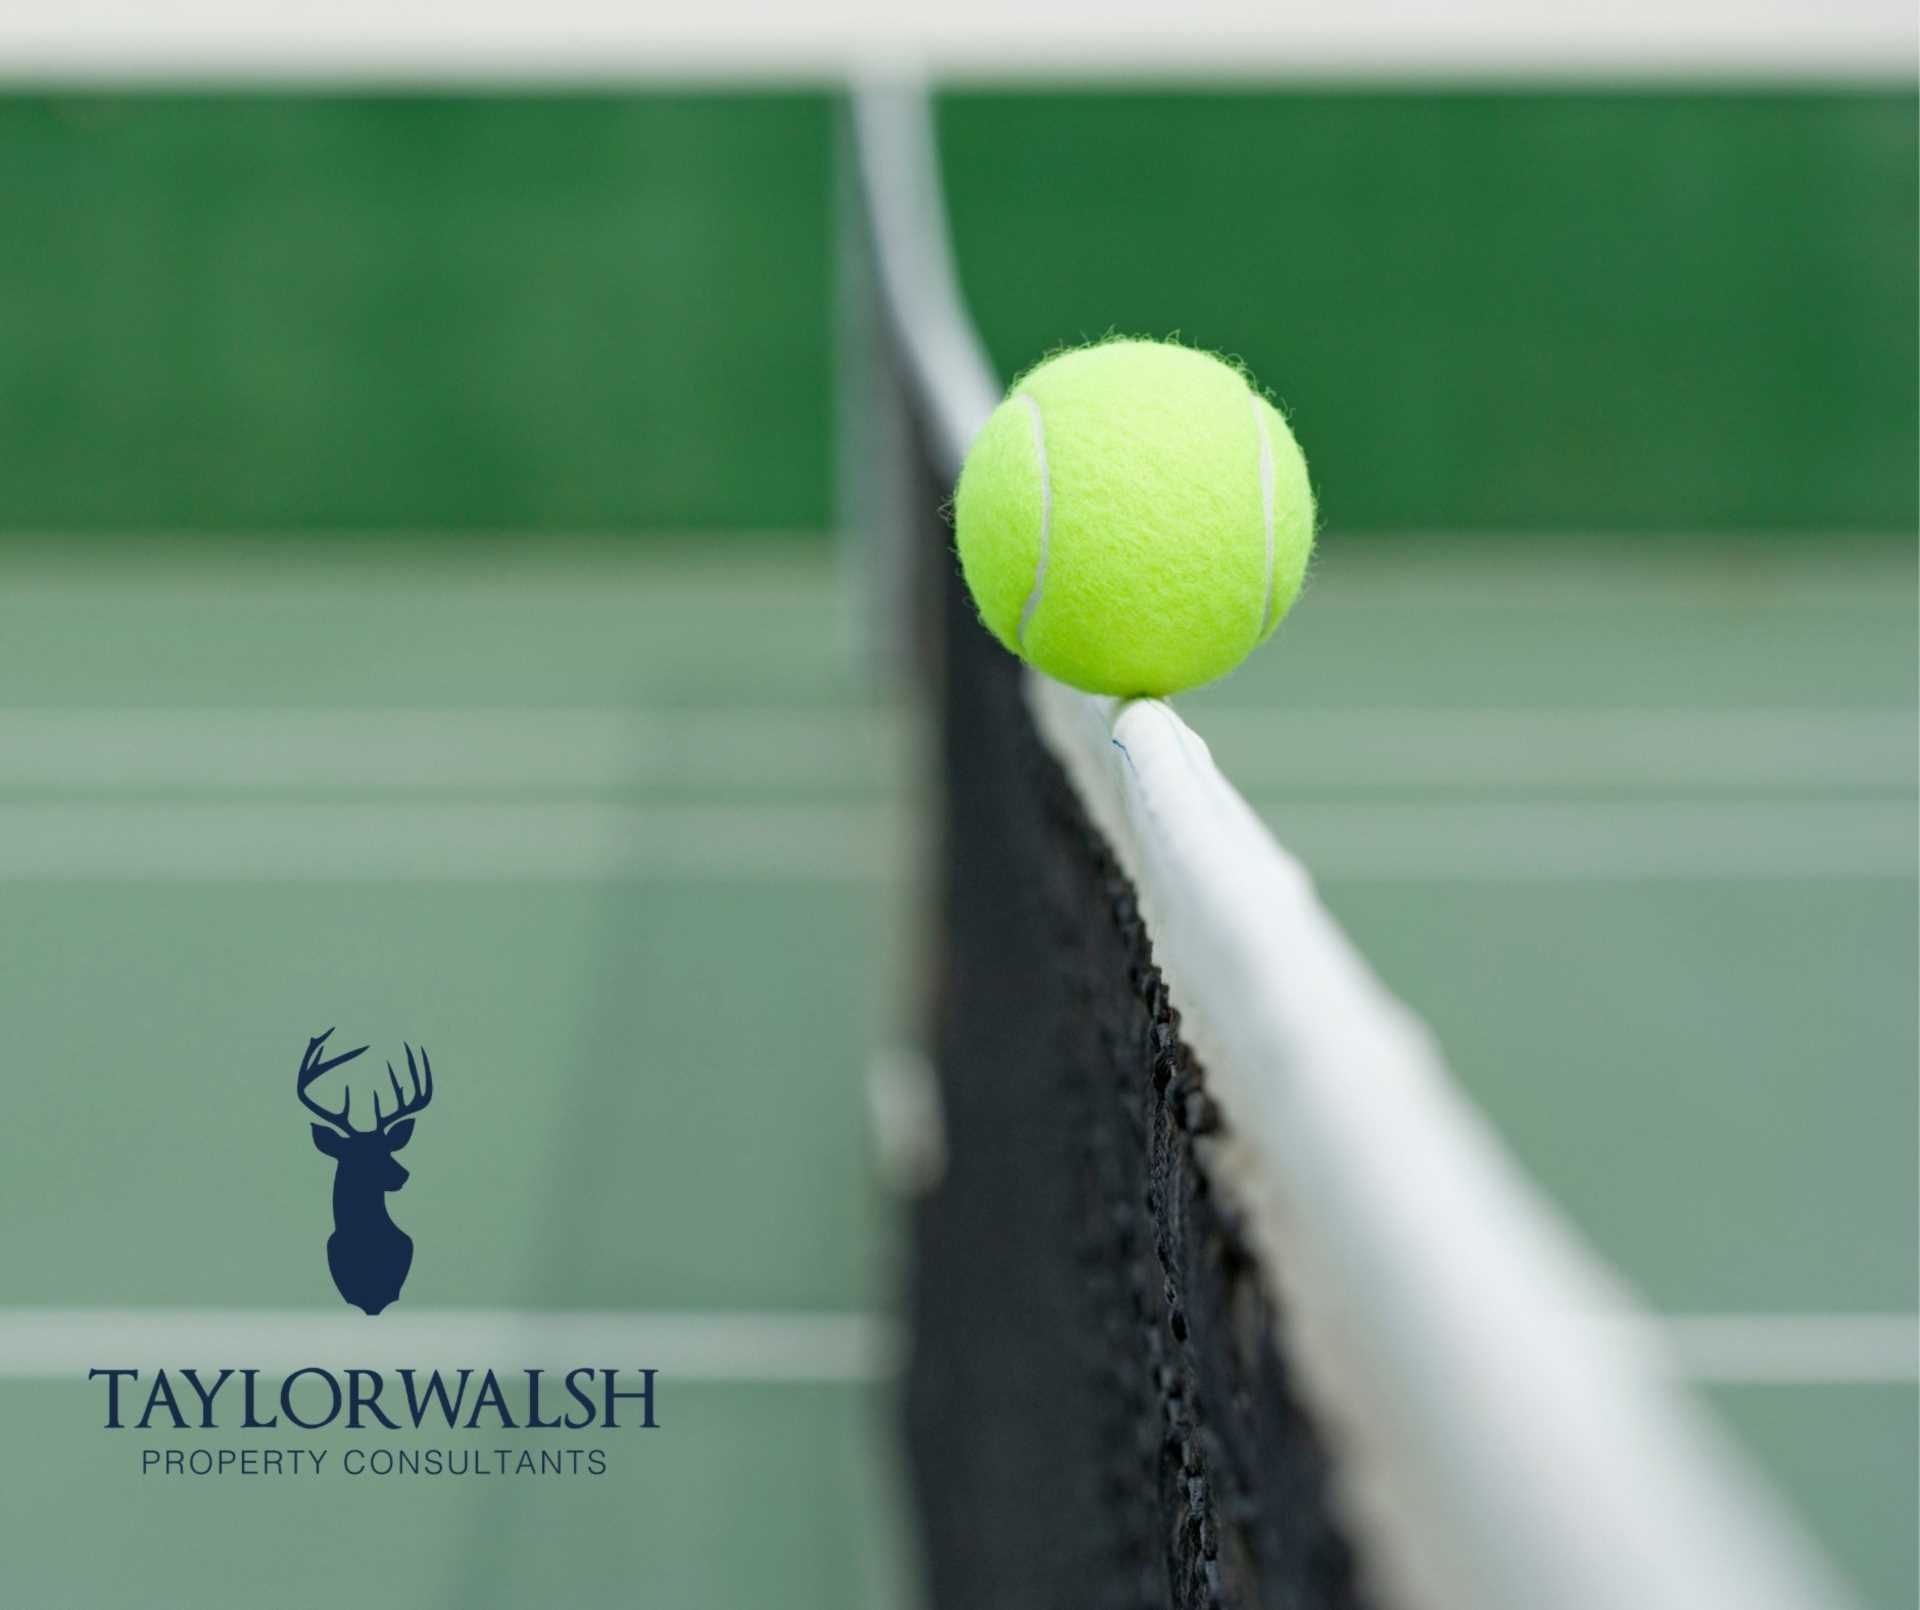 What does Wimbledon and good estate agents have in common?